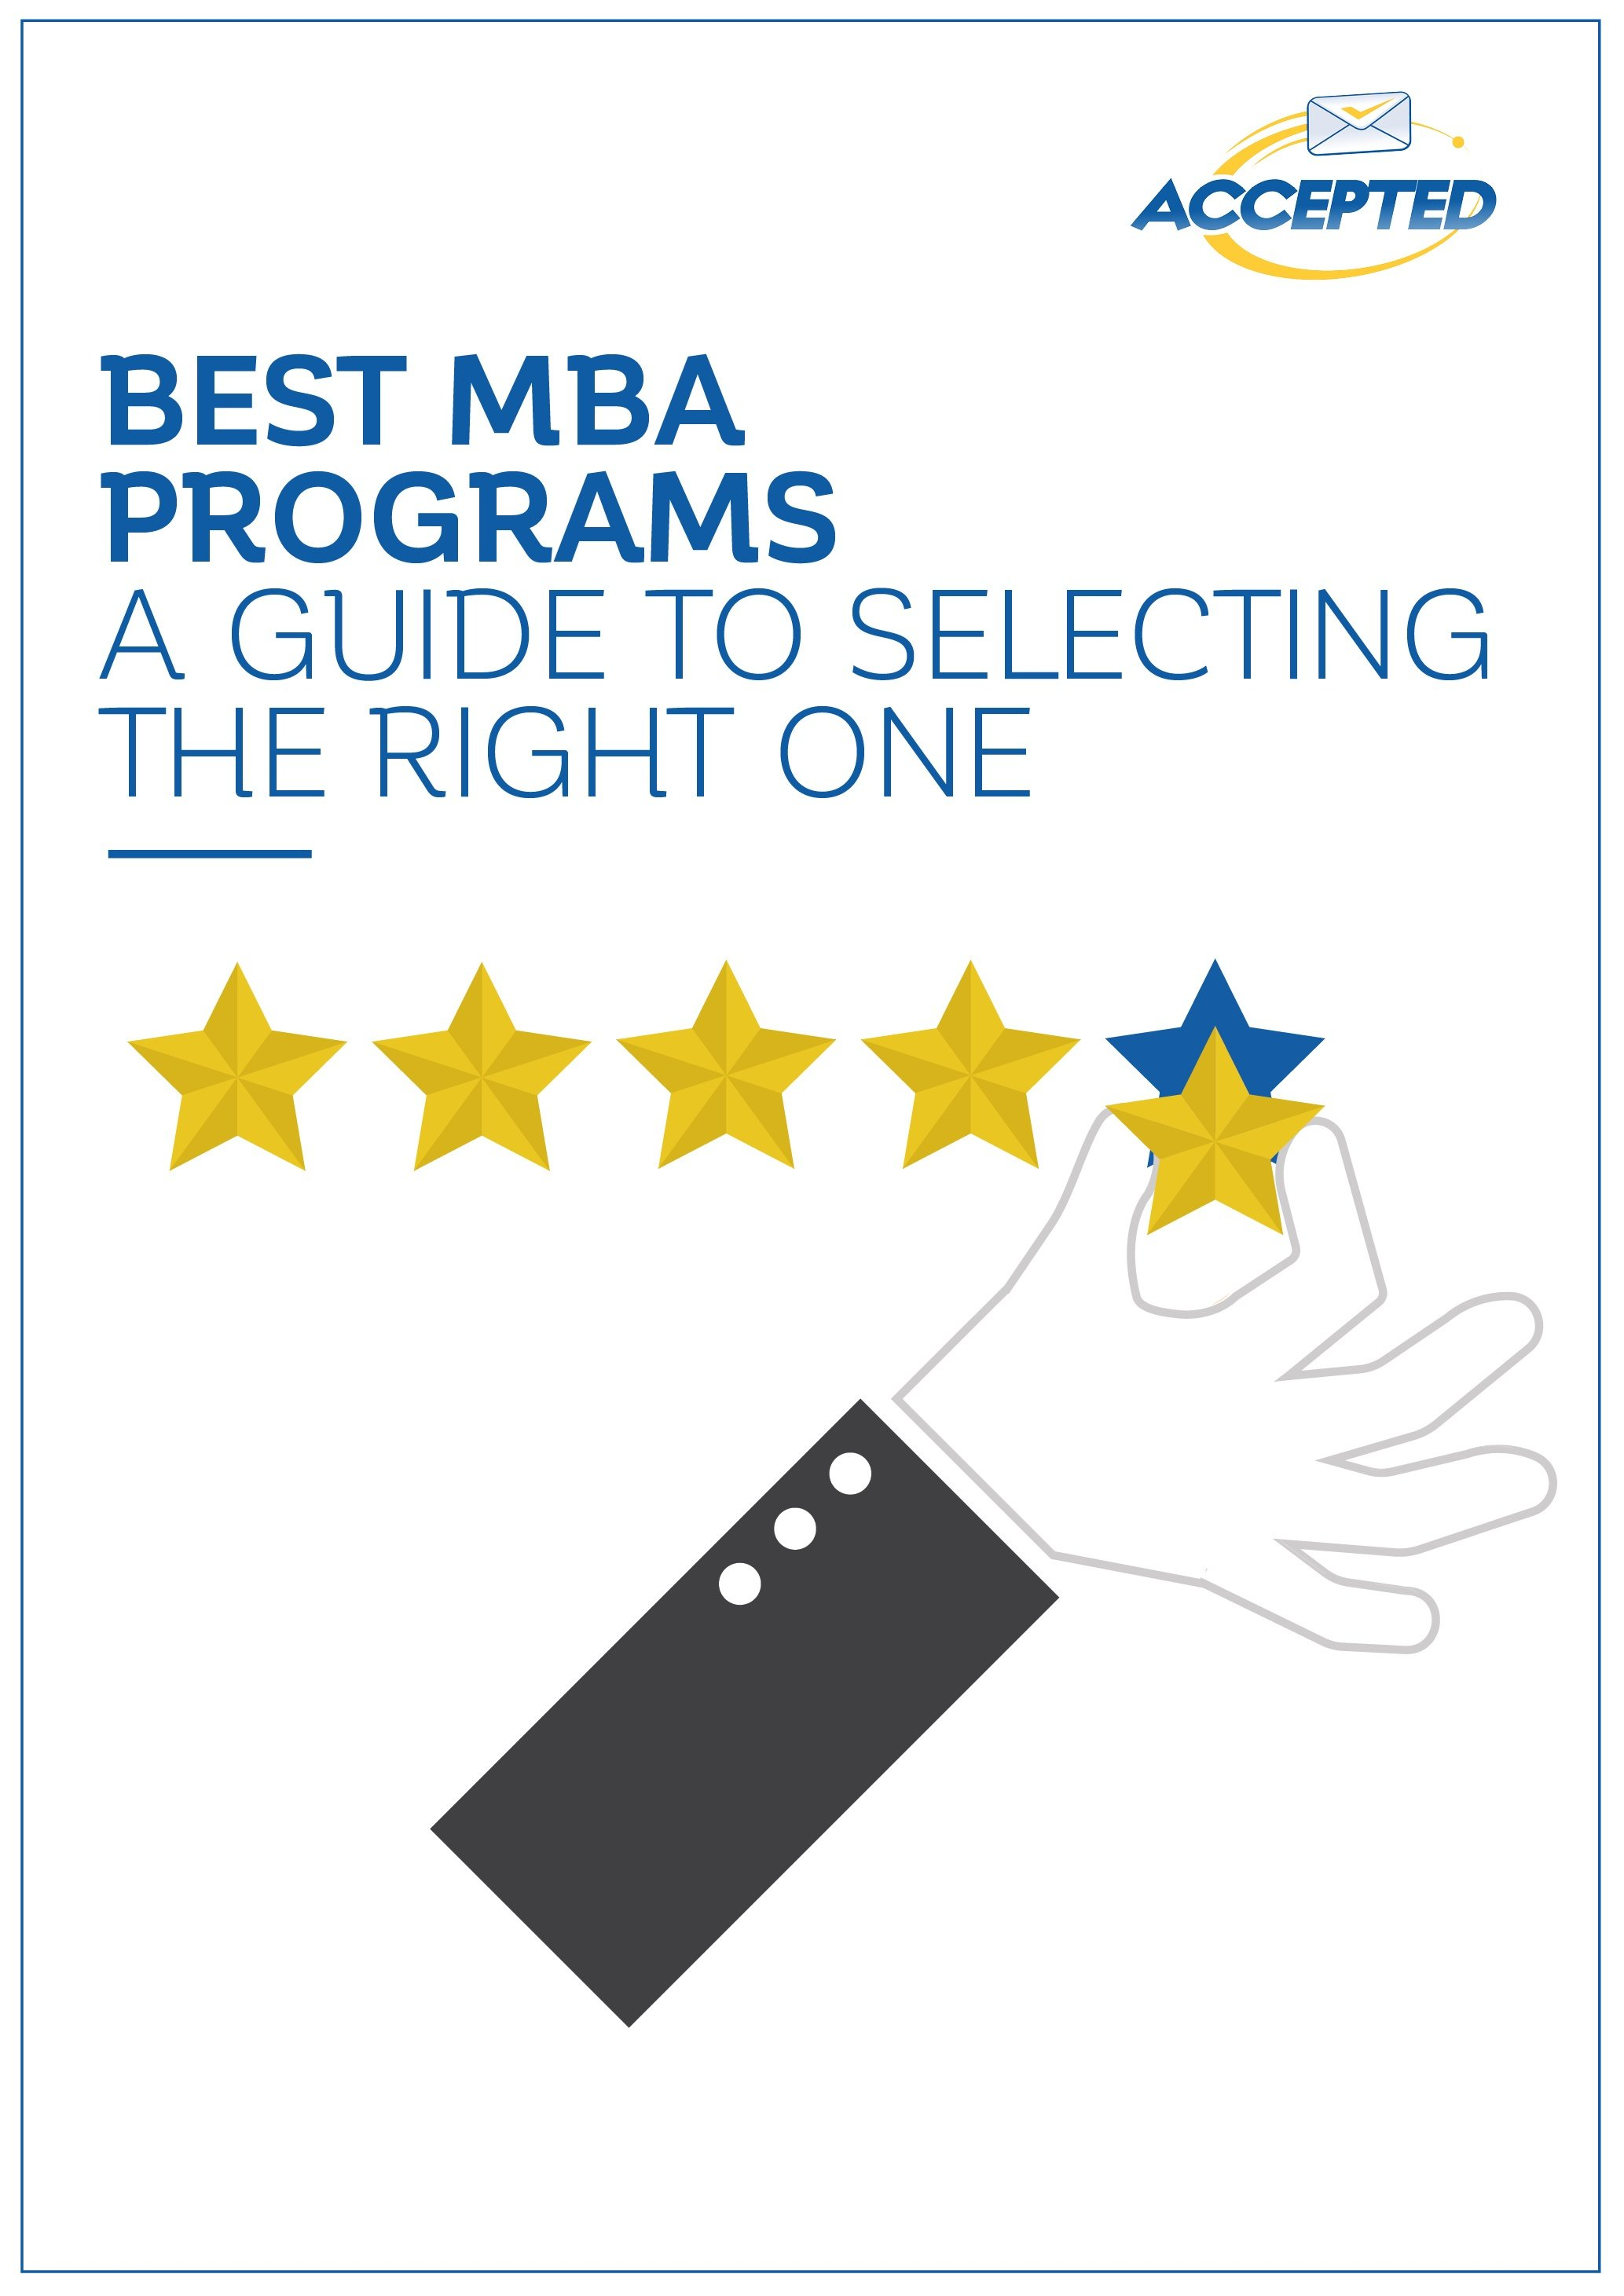 Best MBA Programs